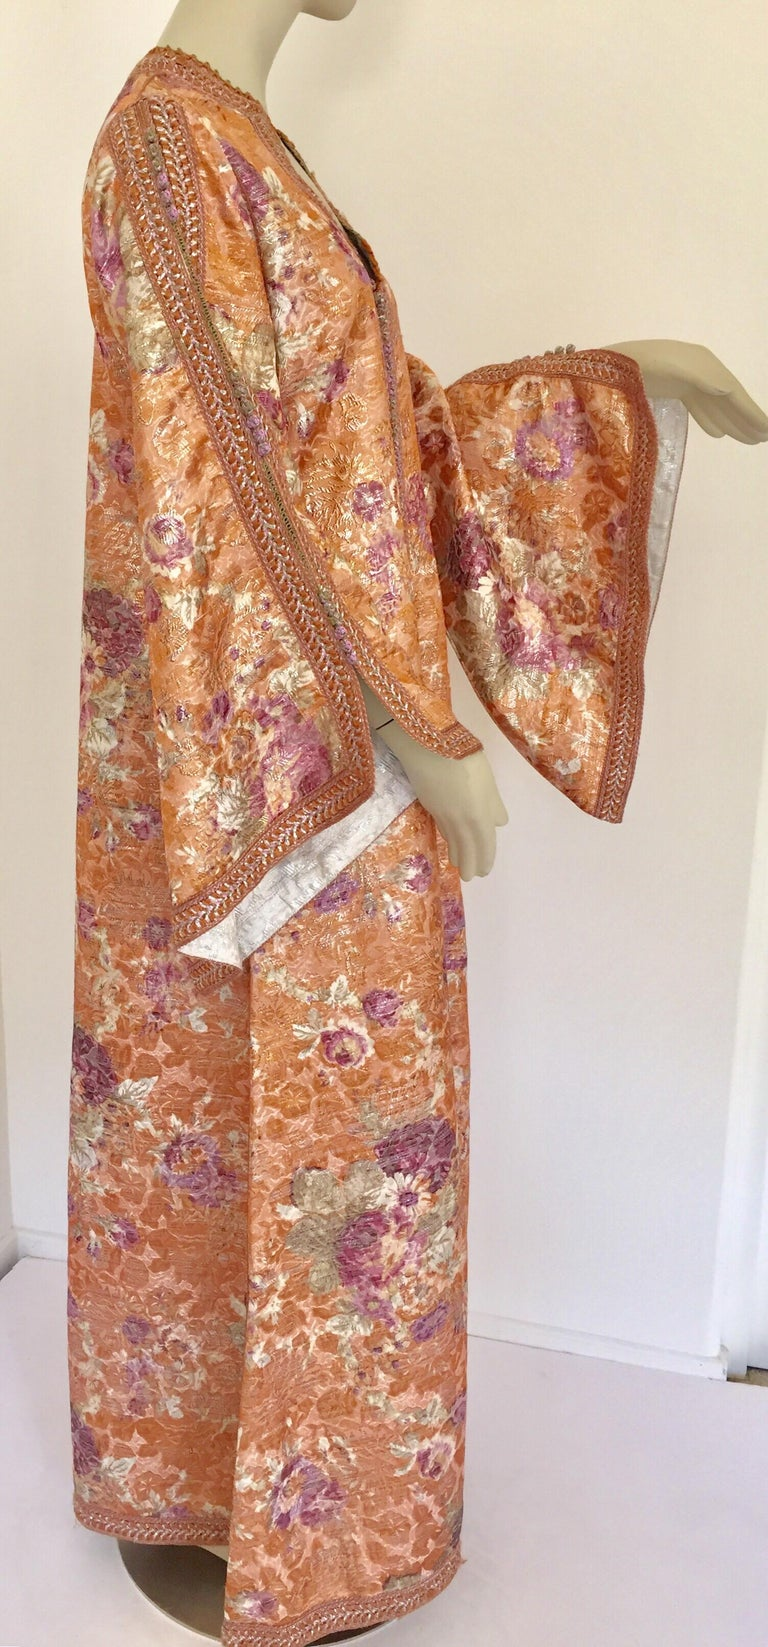 Moroccan Kaftan Orange and Purple Floral with Gold Embroidered Maxi Dress Caftan For Sale 12